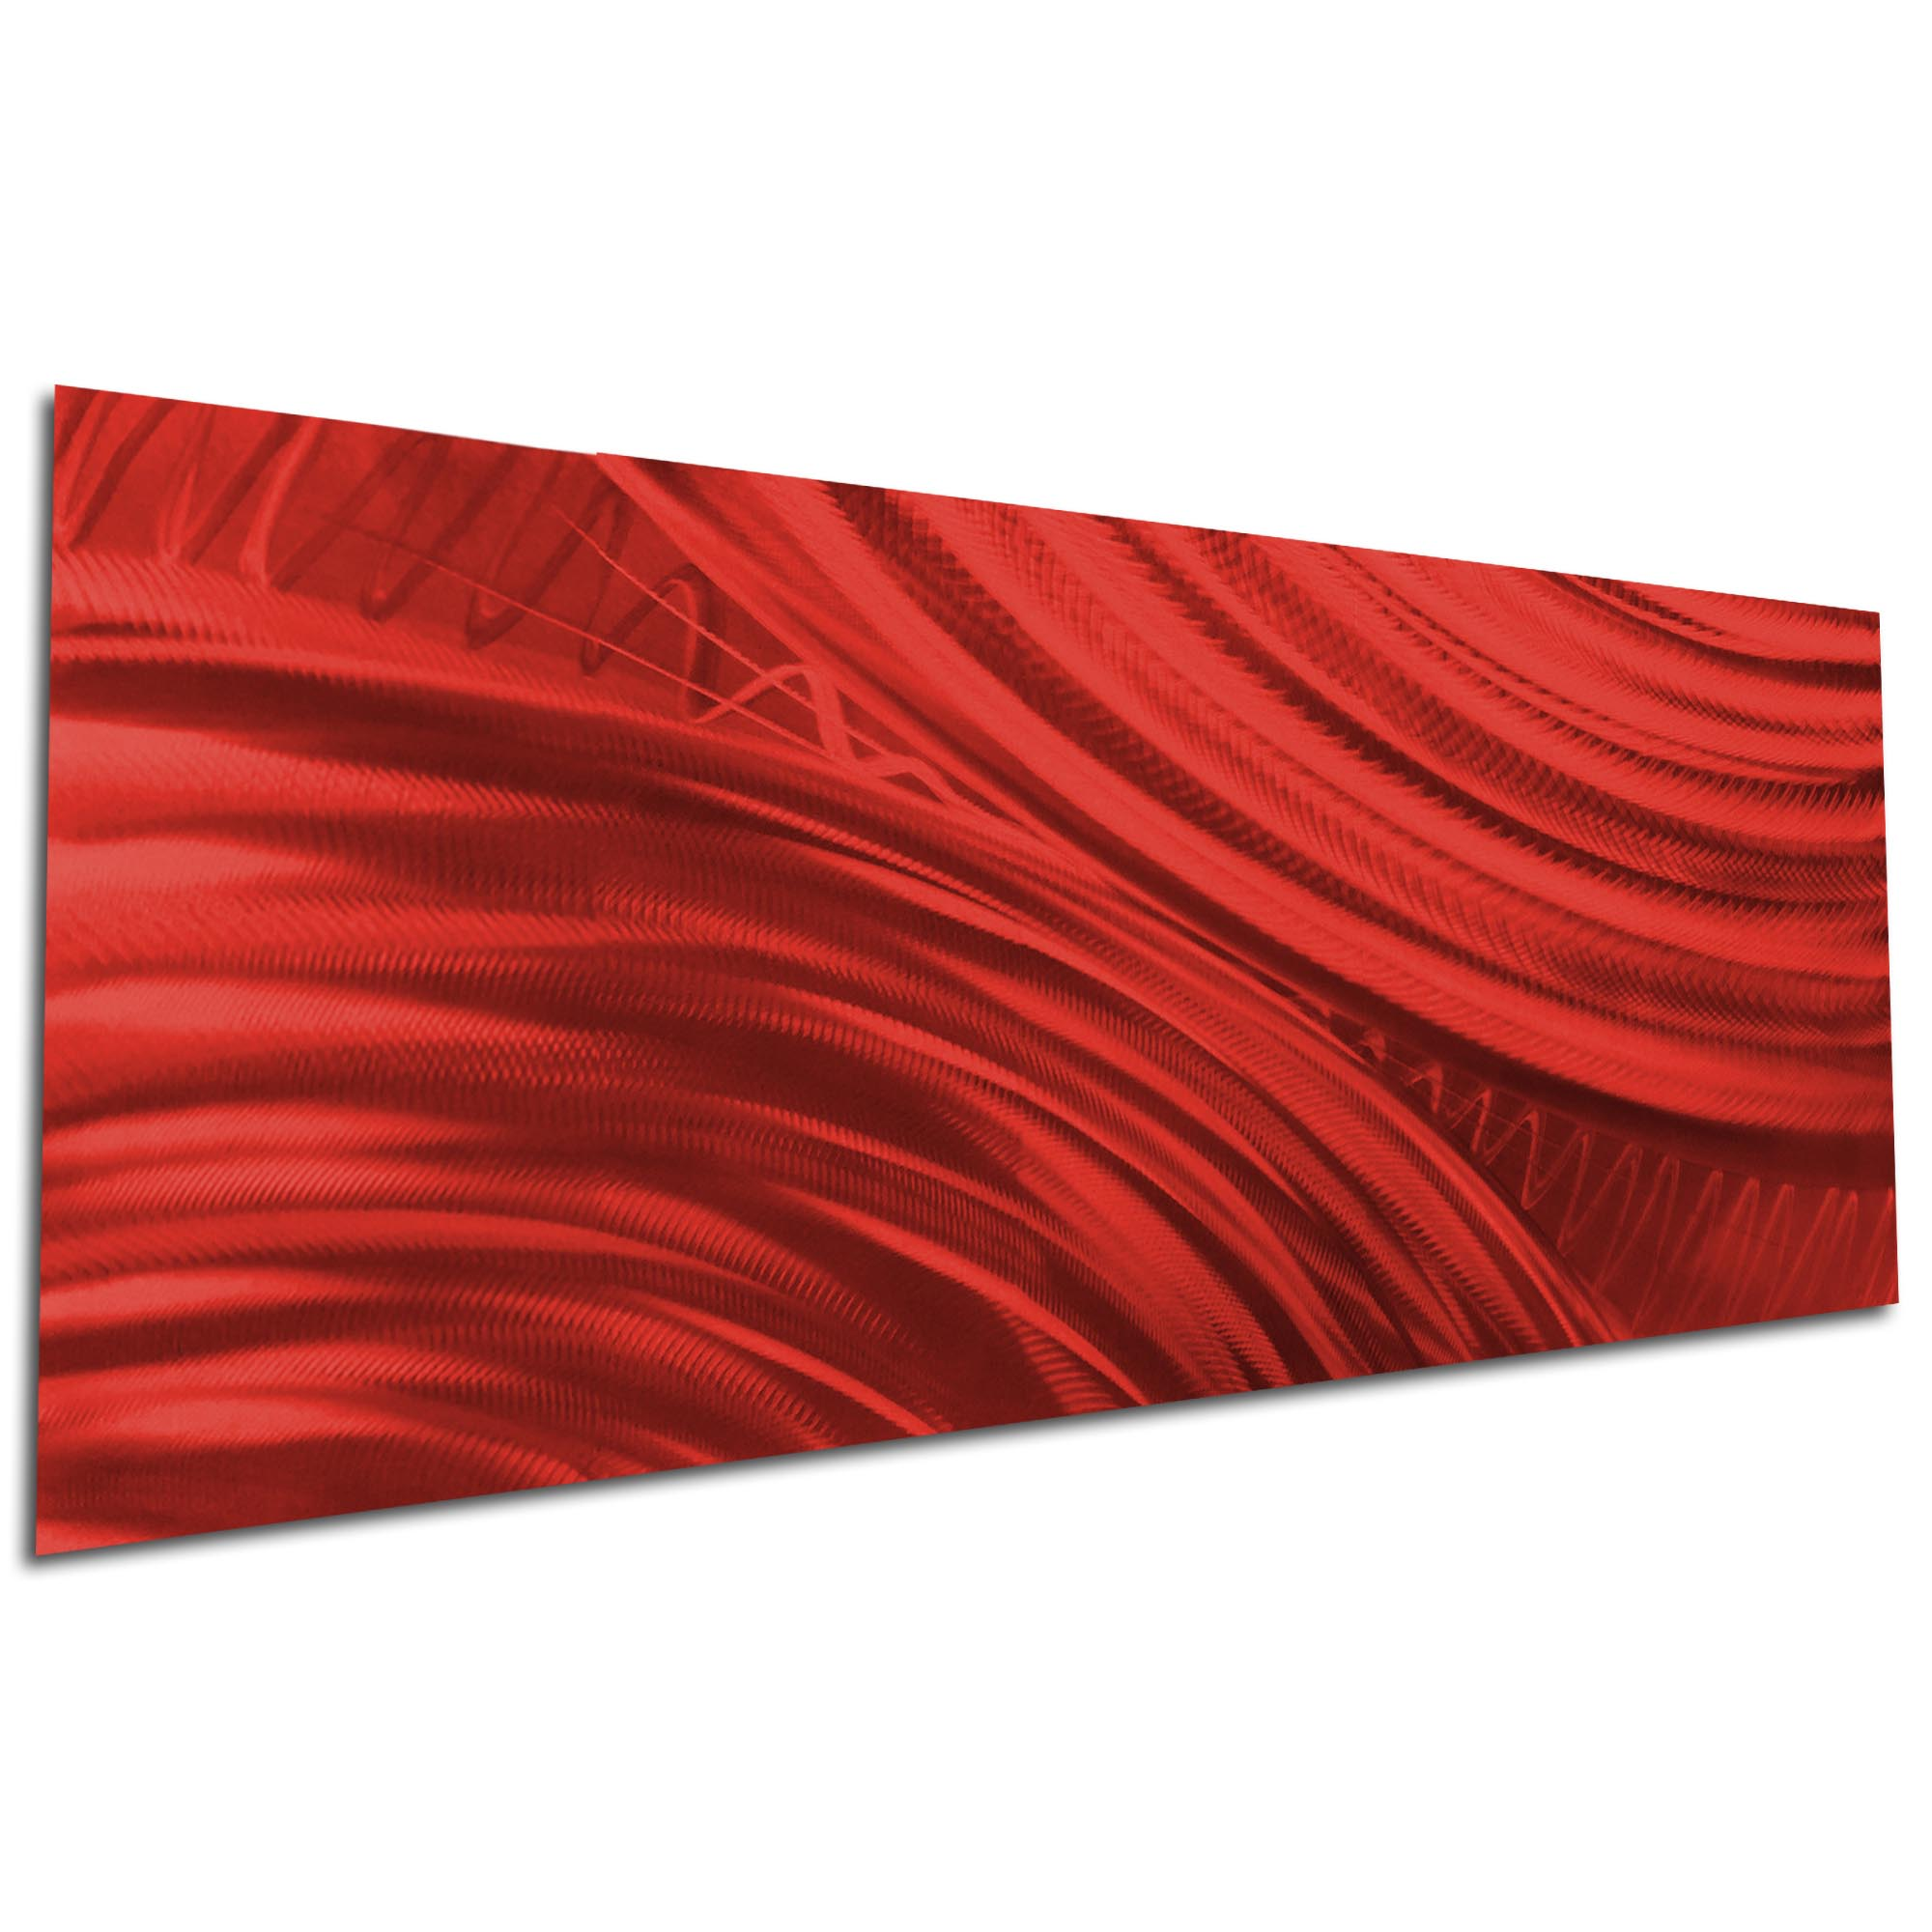 Moment of Impact Red by Helena Martin - Original Abstract Art on Ground and Painted Metal - Image 3